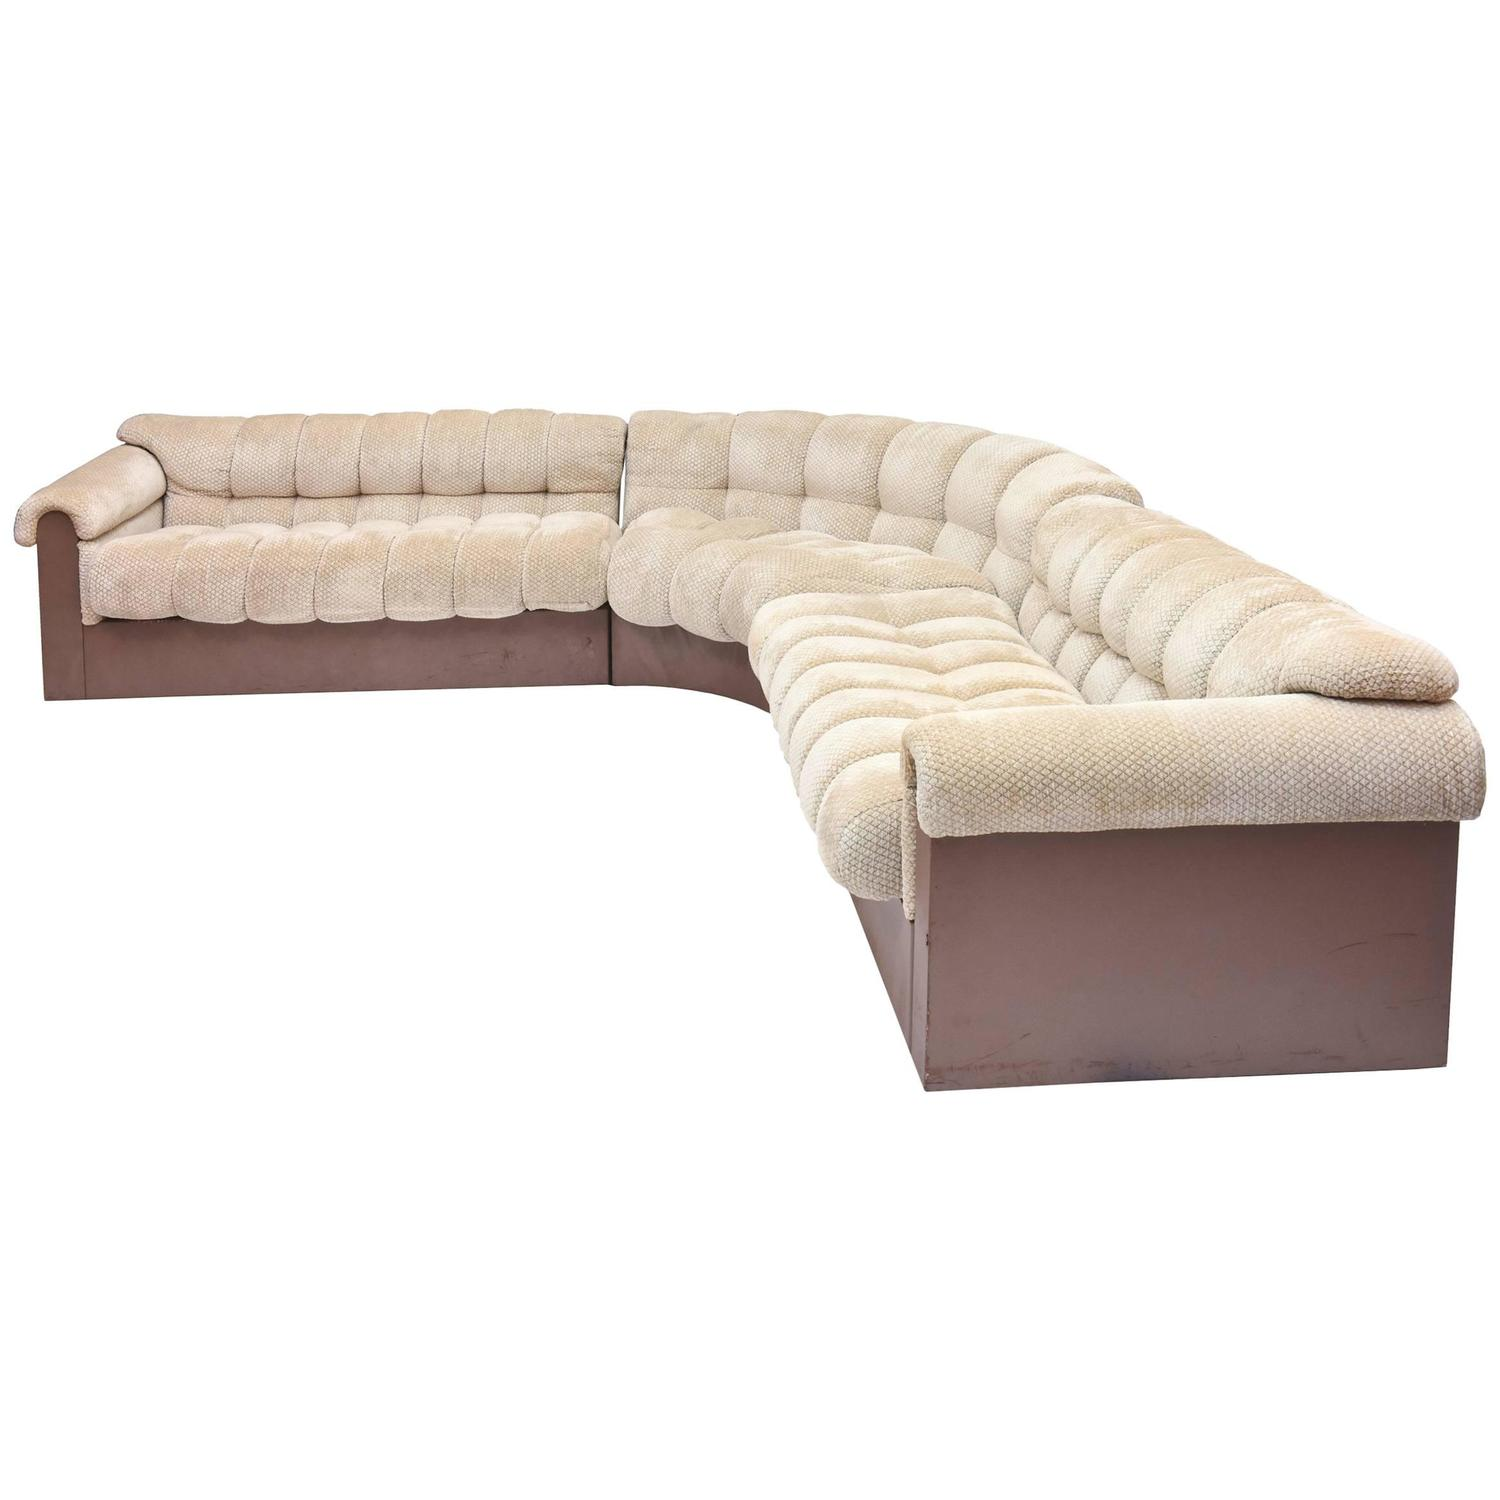 1980s Sectional Sofas 20 For Sale at 1stdibs